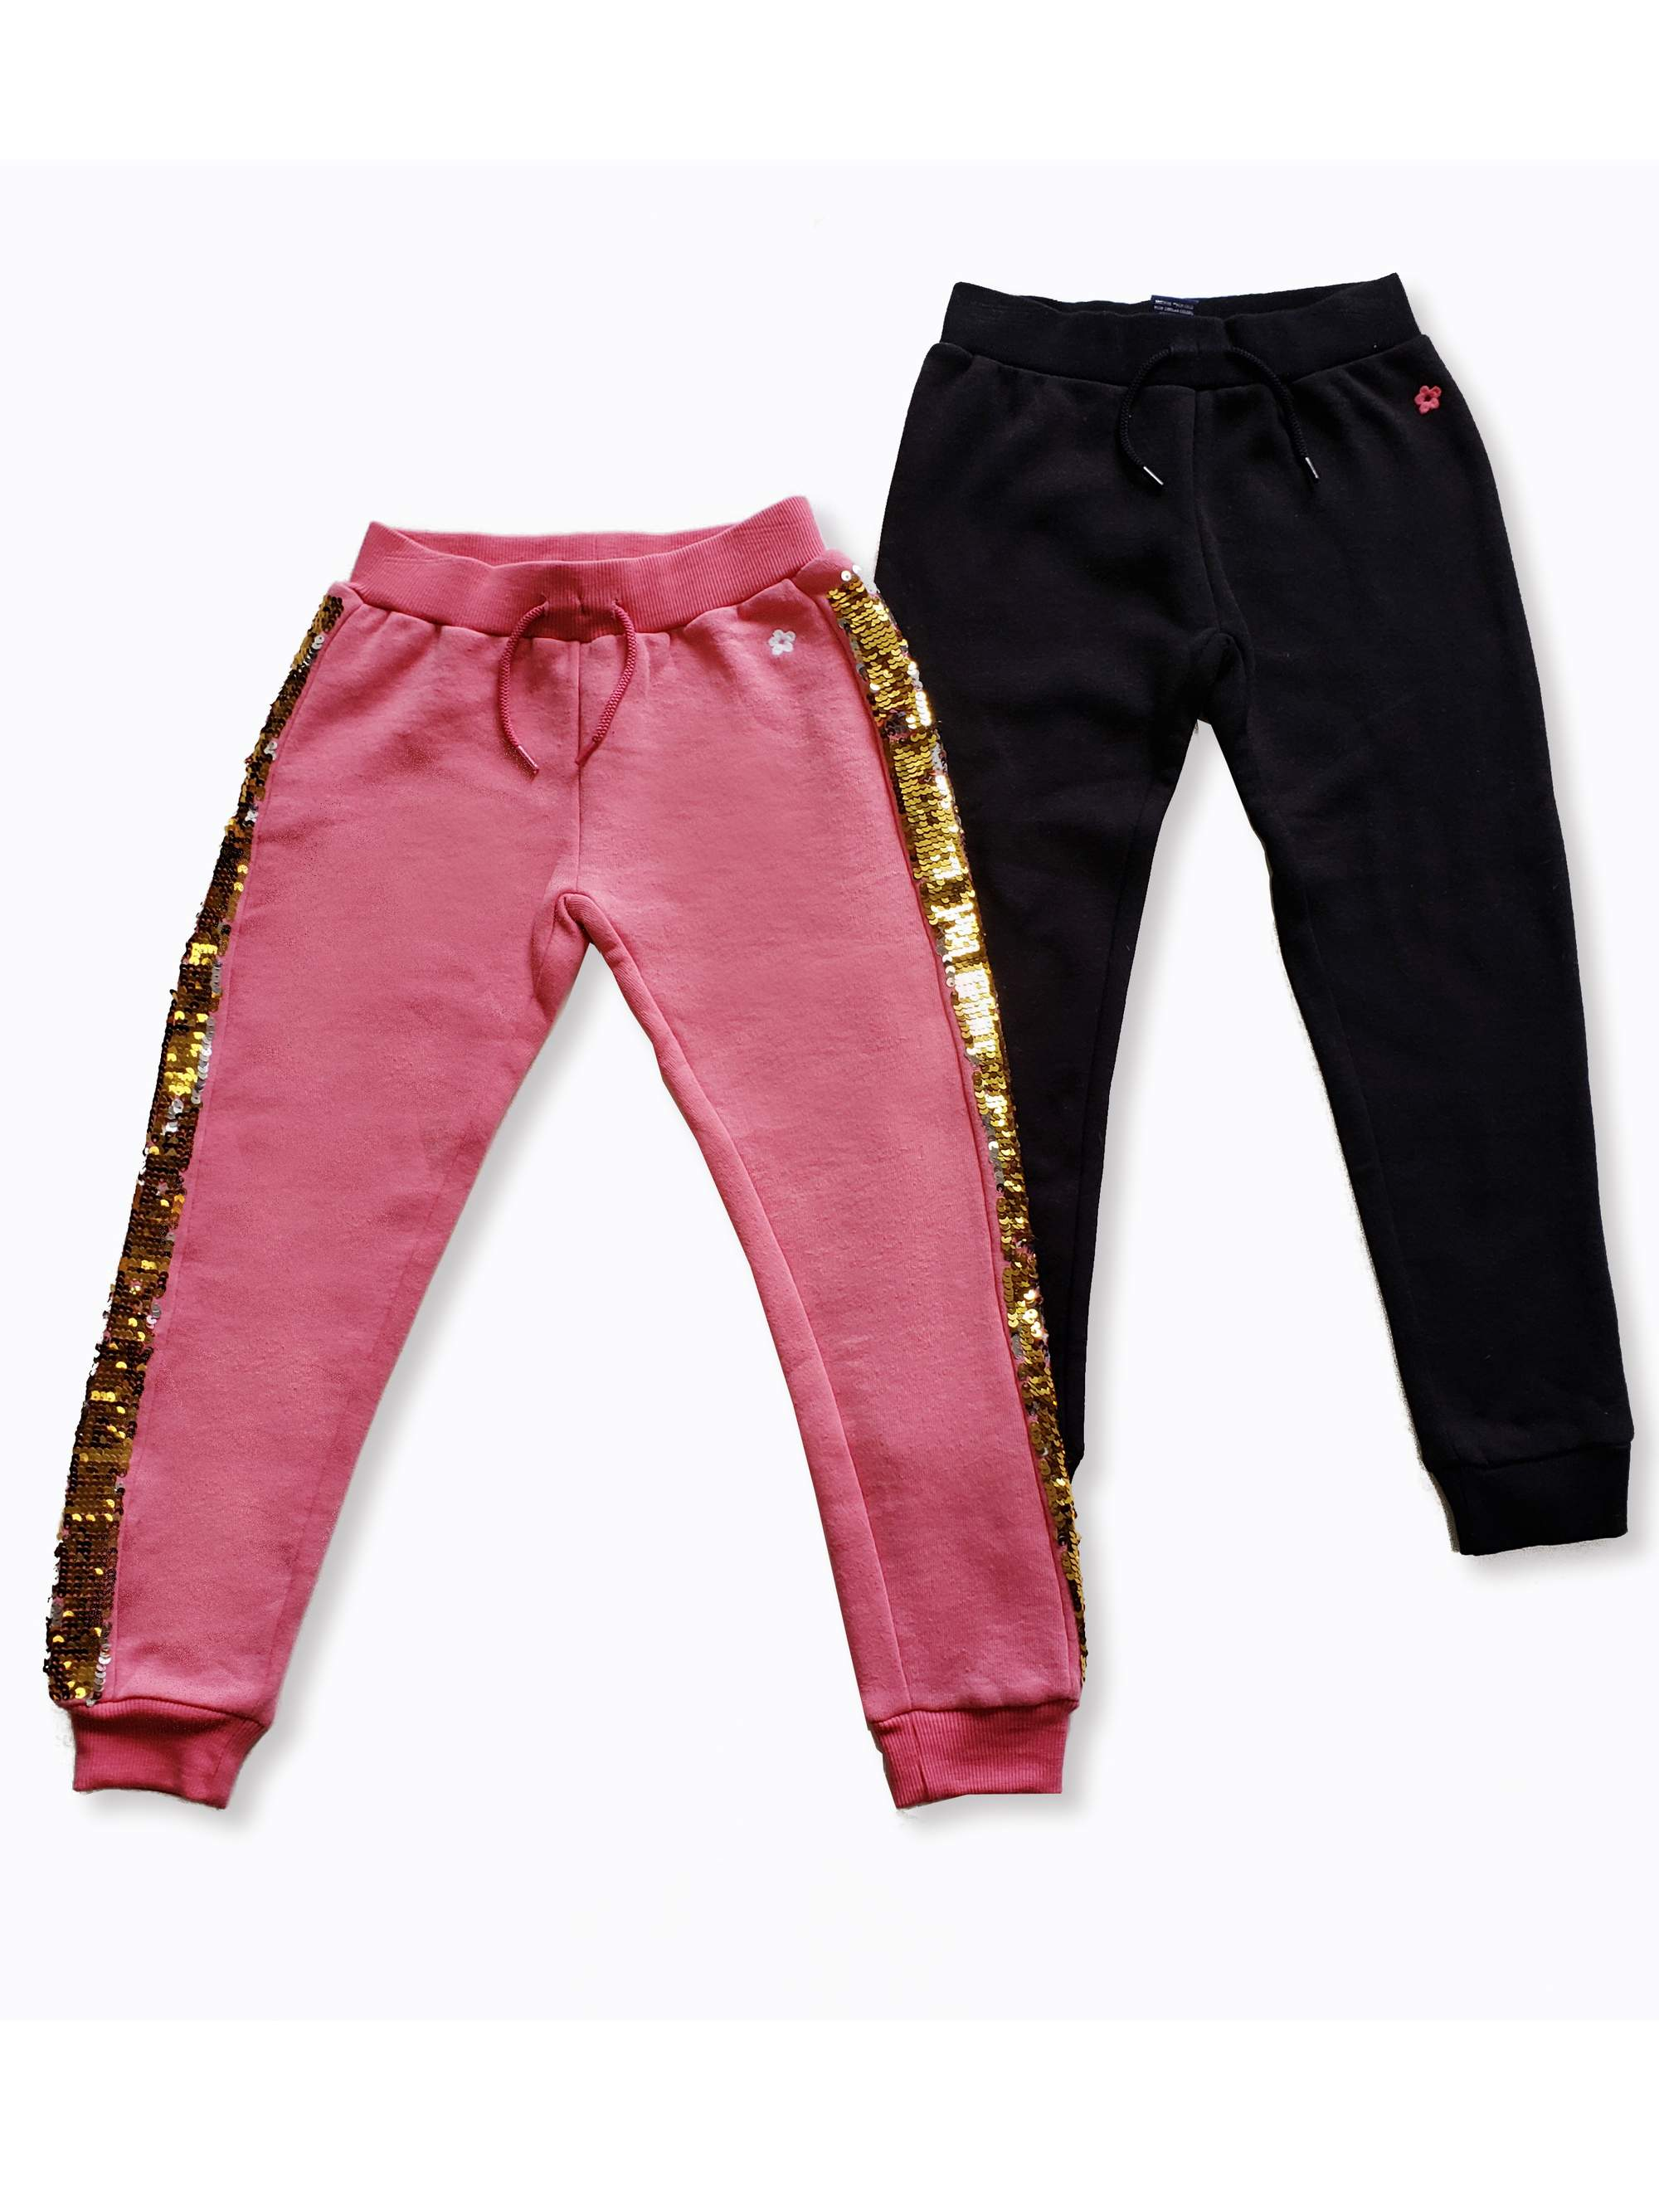 French Terry Sequin Jogger Pants, 2-Pack (Little Girls & Big Girls)